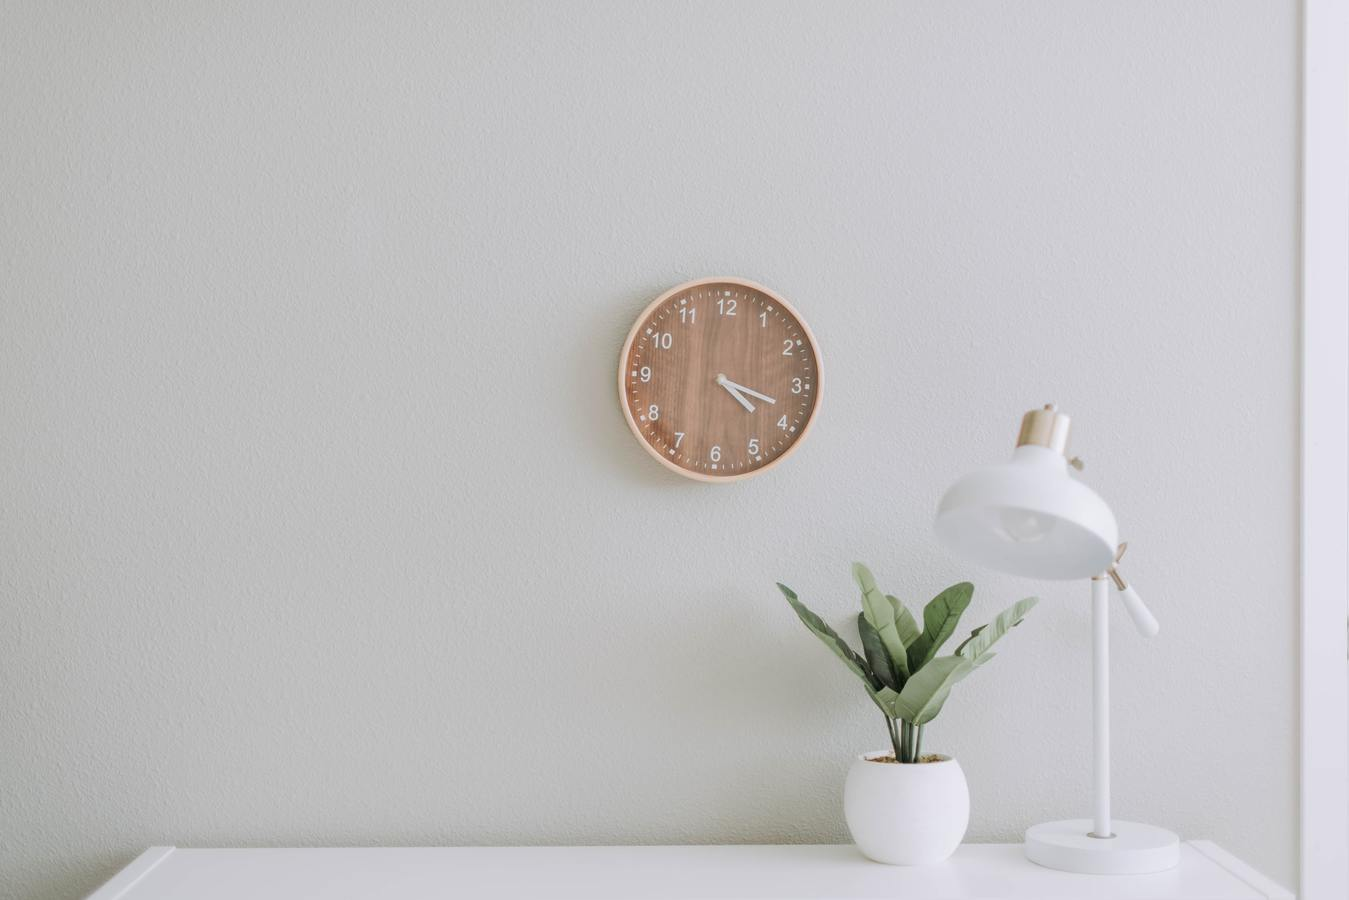 A wall clock over a table with a lamp and a plant